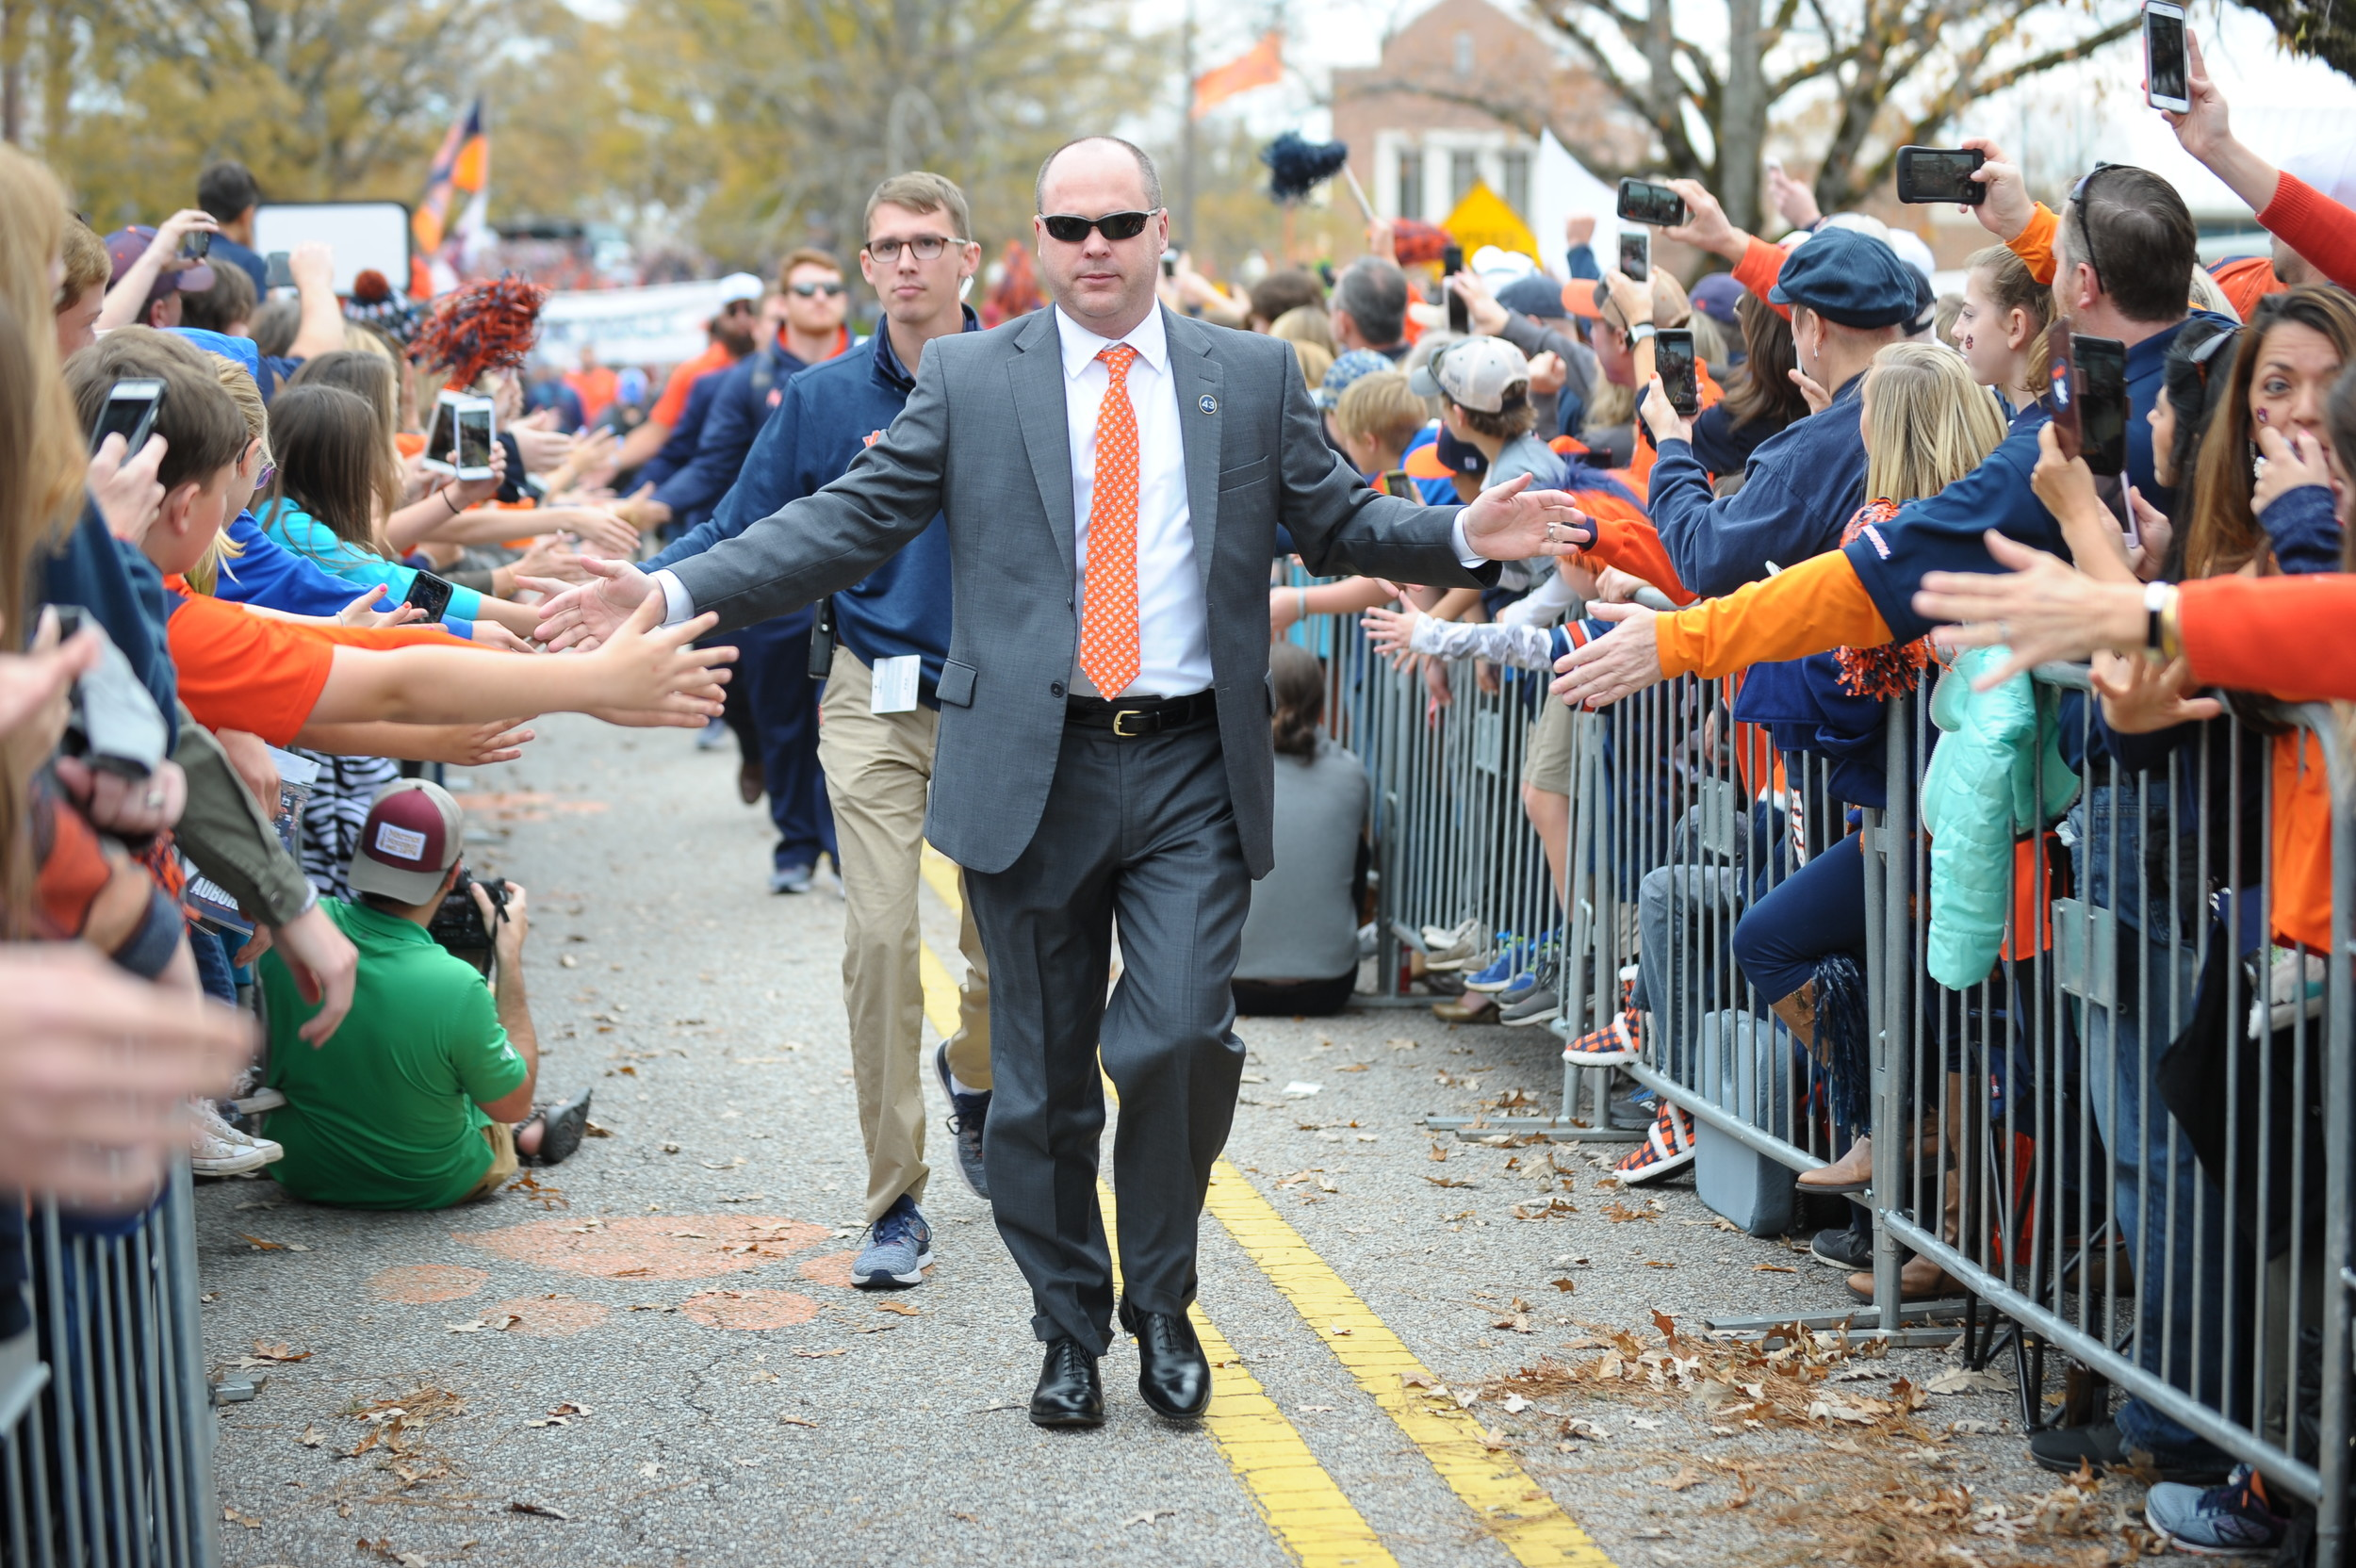 Auburn Tigers offensive coordinator Chip Lindsey during Tiger Walk prior to Saturday's game, at Jordan-Hare Stadium.